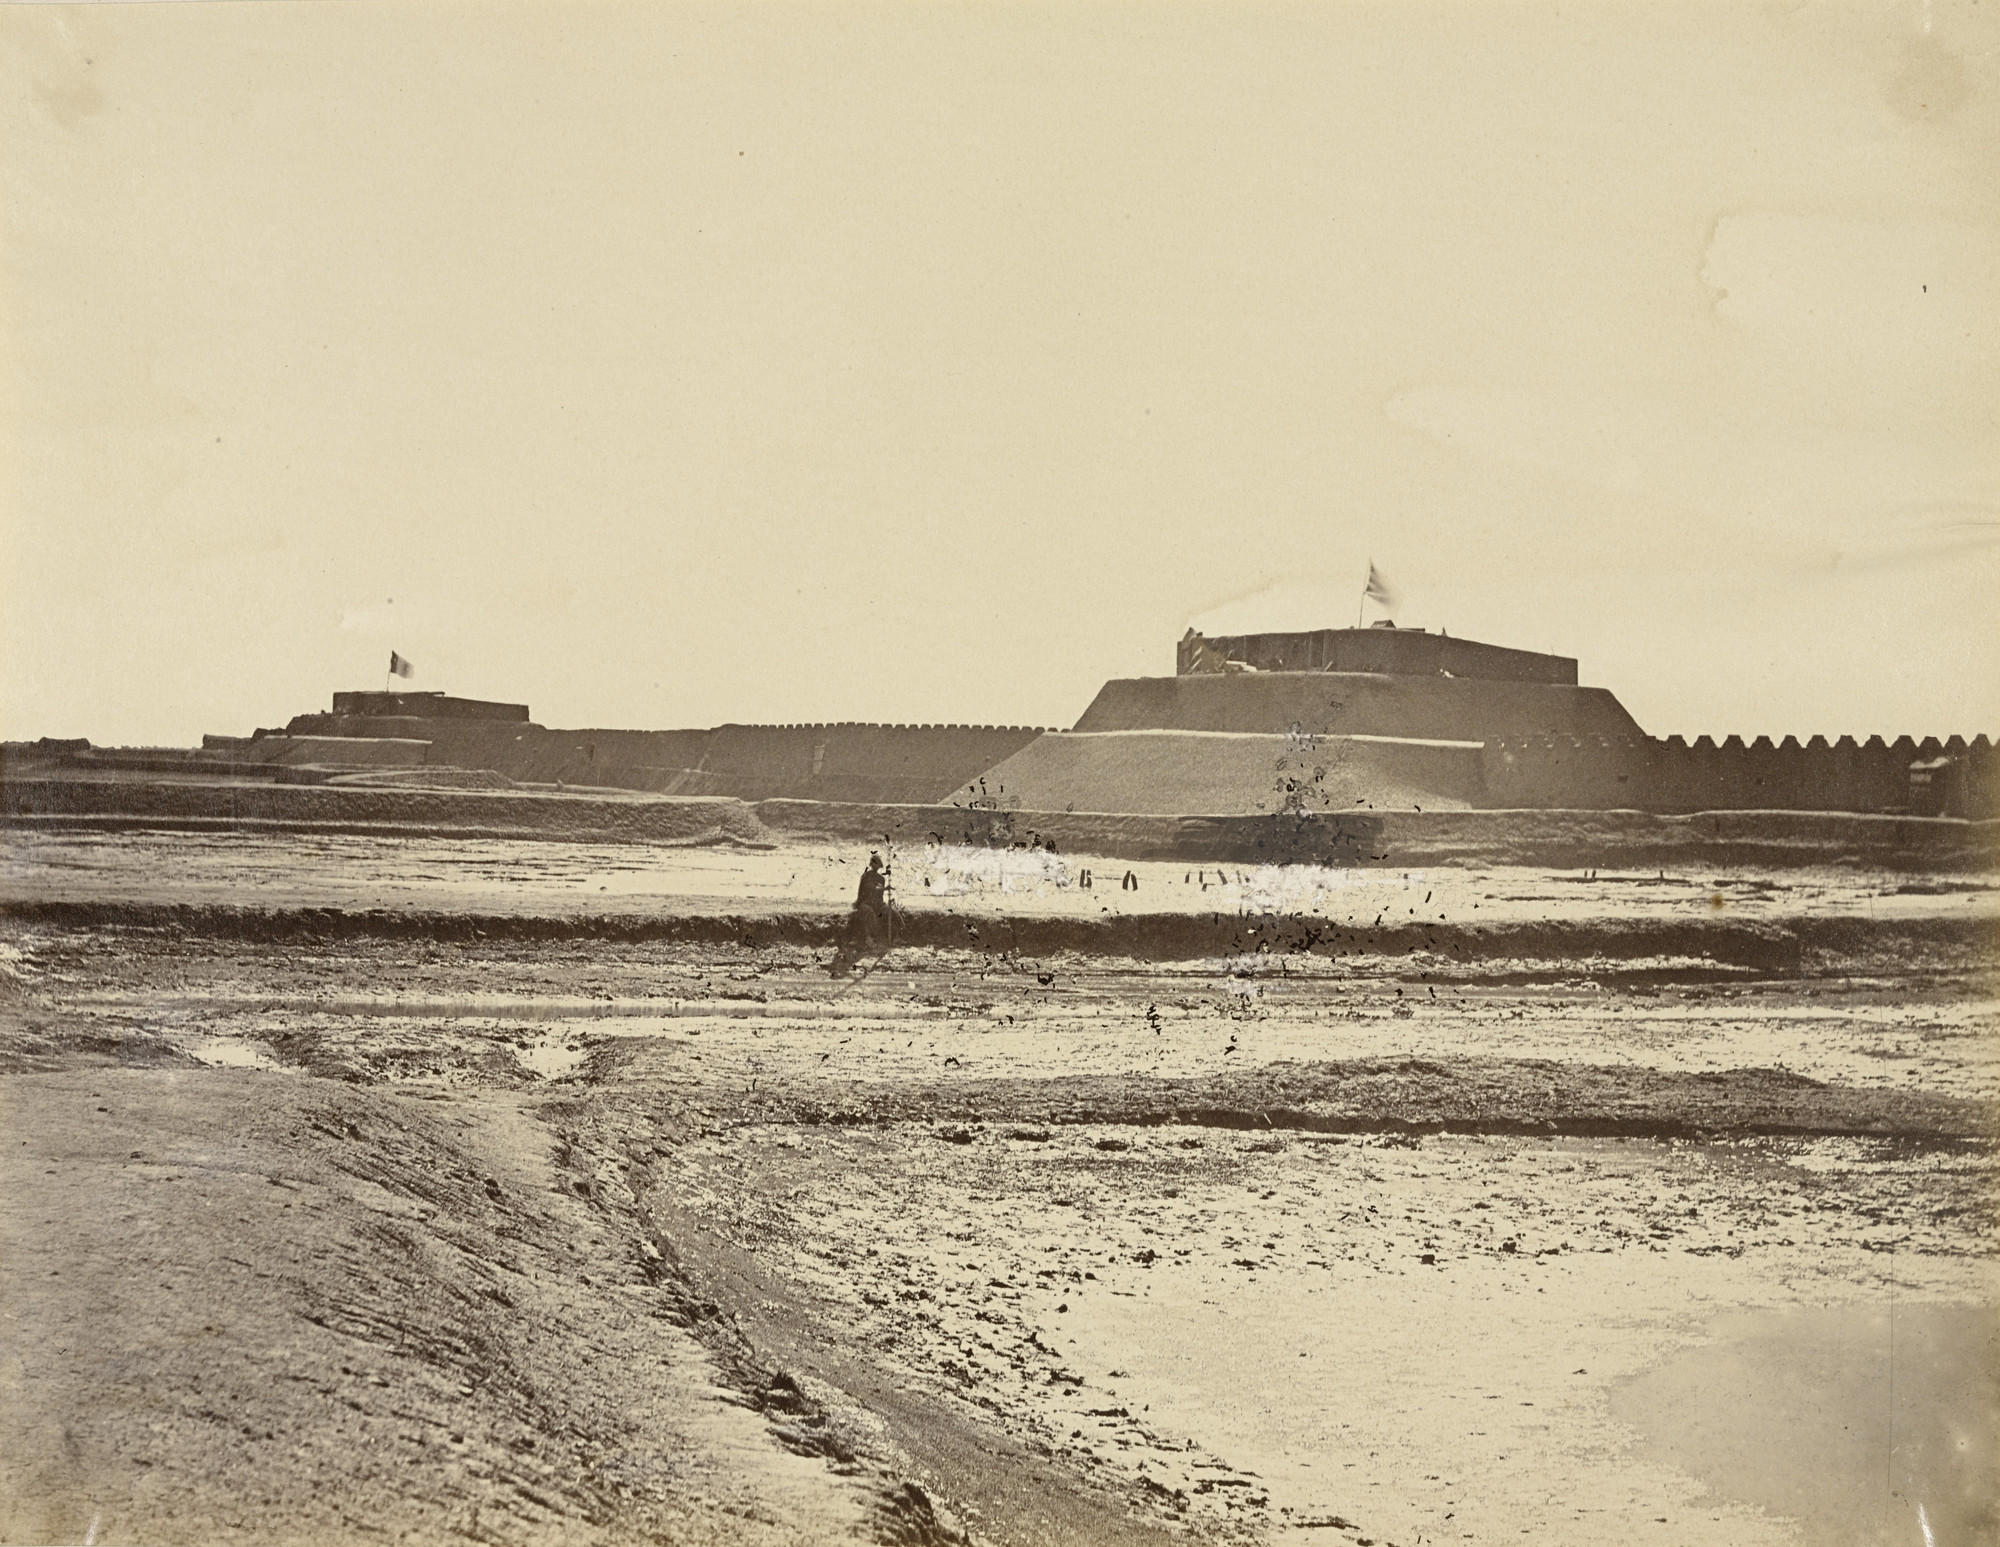 Felice Beato. Pehtang Fort. August 1, 1860